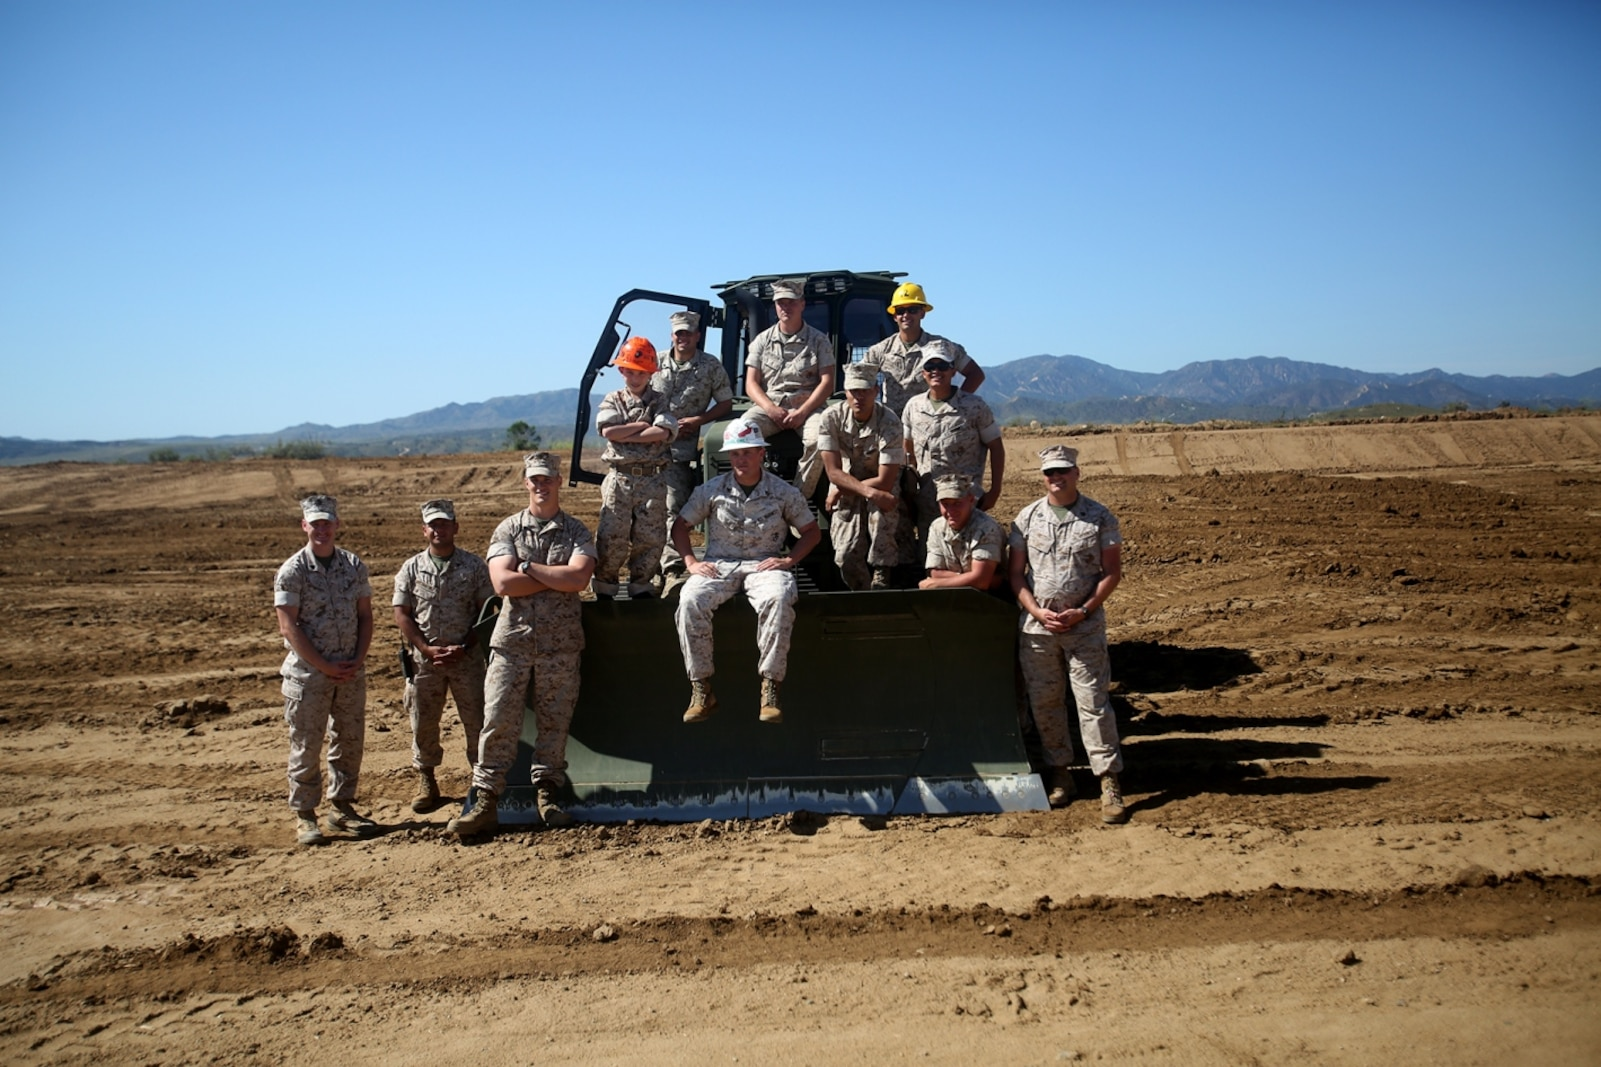 Nathan Aldaco, a 12 year-old boy with hypoplastic left heart syndrome, poses for a photo with heavy equipment operators during a Make-A-Wish event supported by 7th Engineer Support Battalion, 1st Marine Logistics Group, aboard Camp Pendleton, Calif., March 24, 2016. Marines with 7th ESB and Explosive Ordnance Disposal helped to make Nathan's wish of becoming a Marine come true by demonstrating the capabilities of their EOD robots and detonating TNT, C4, dynamite and blasting caps, while the heavy equipment operators gave him the opportunity to ride the D7 dozer and the excavator, in which he dug a pit, built a berm, and broke several large tree trunks.  (U.S. Marine Corps photo by Sgt. Laura Gauna/released)